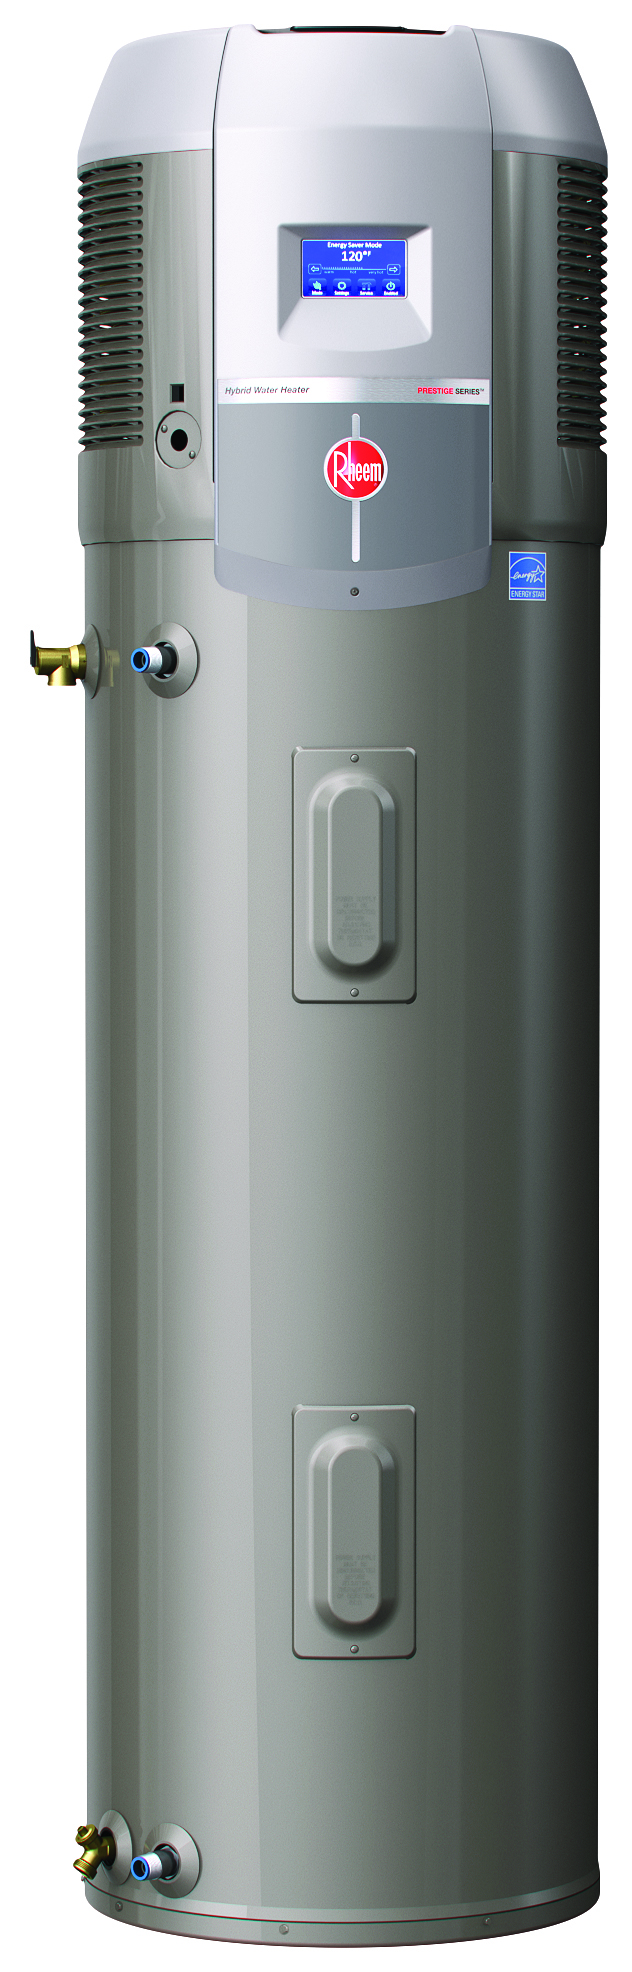 Hybrid Water Heater ~ Tour my home — happy